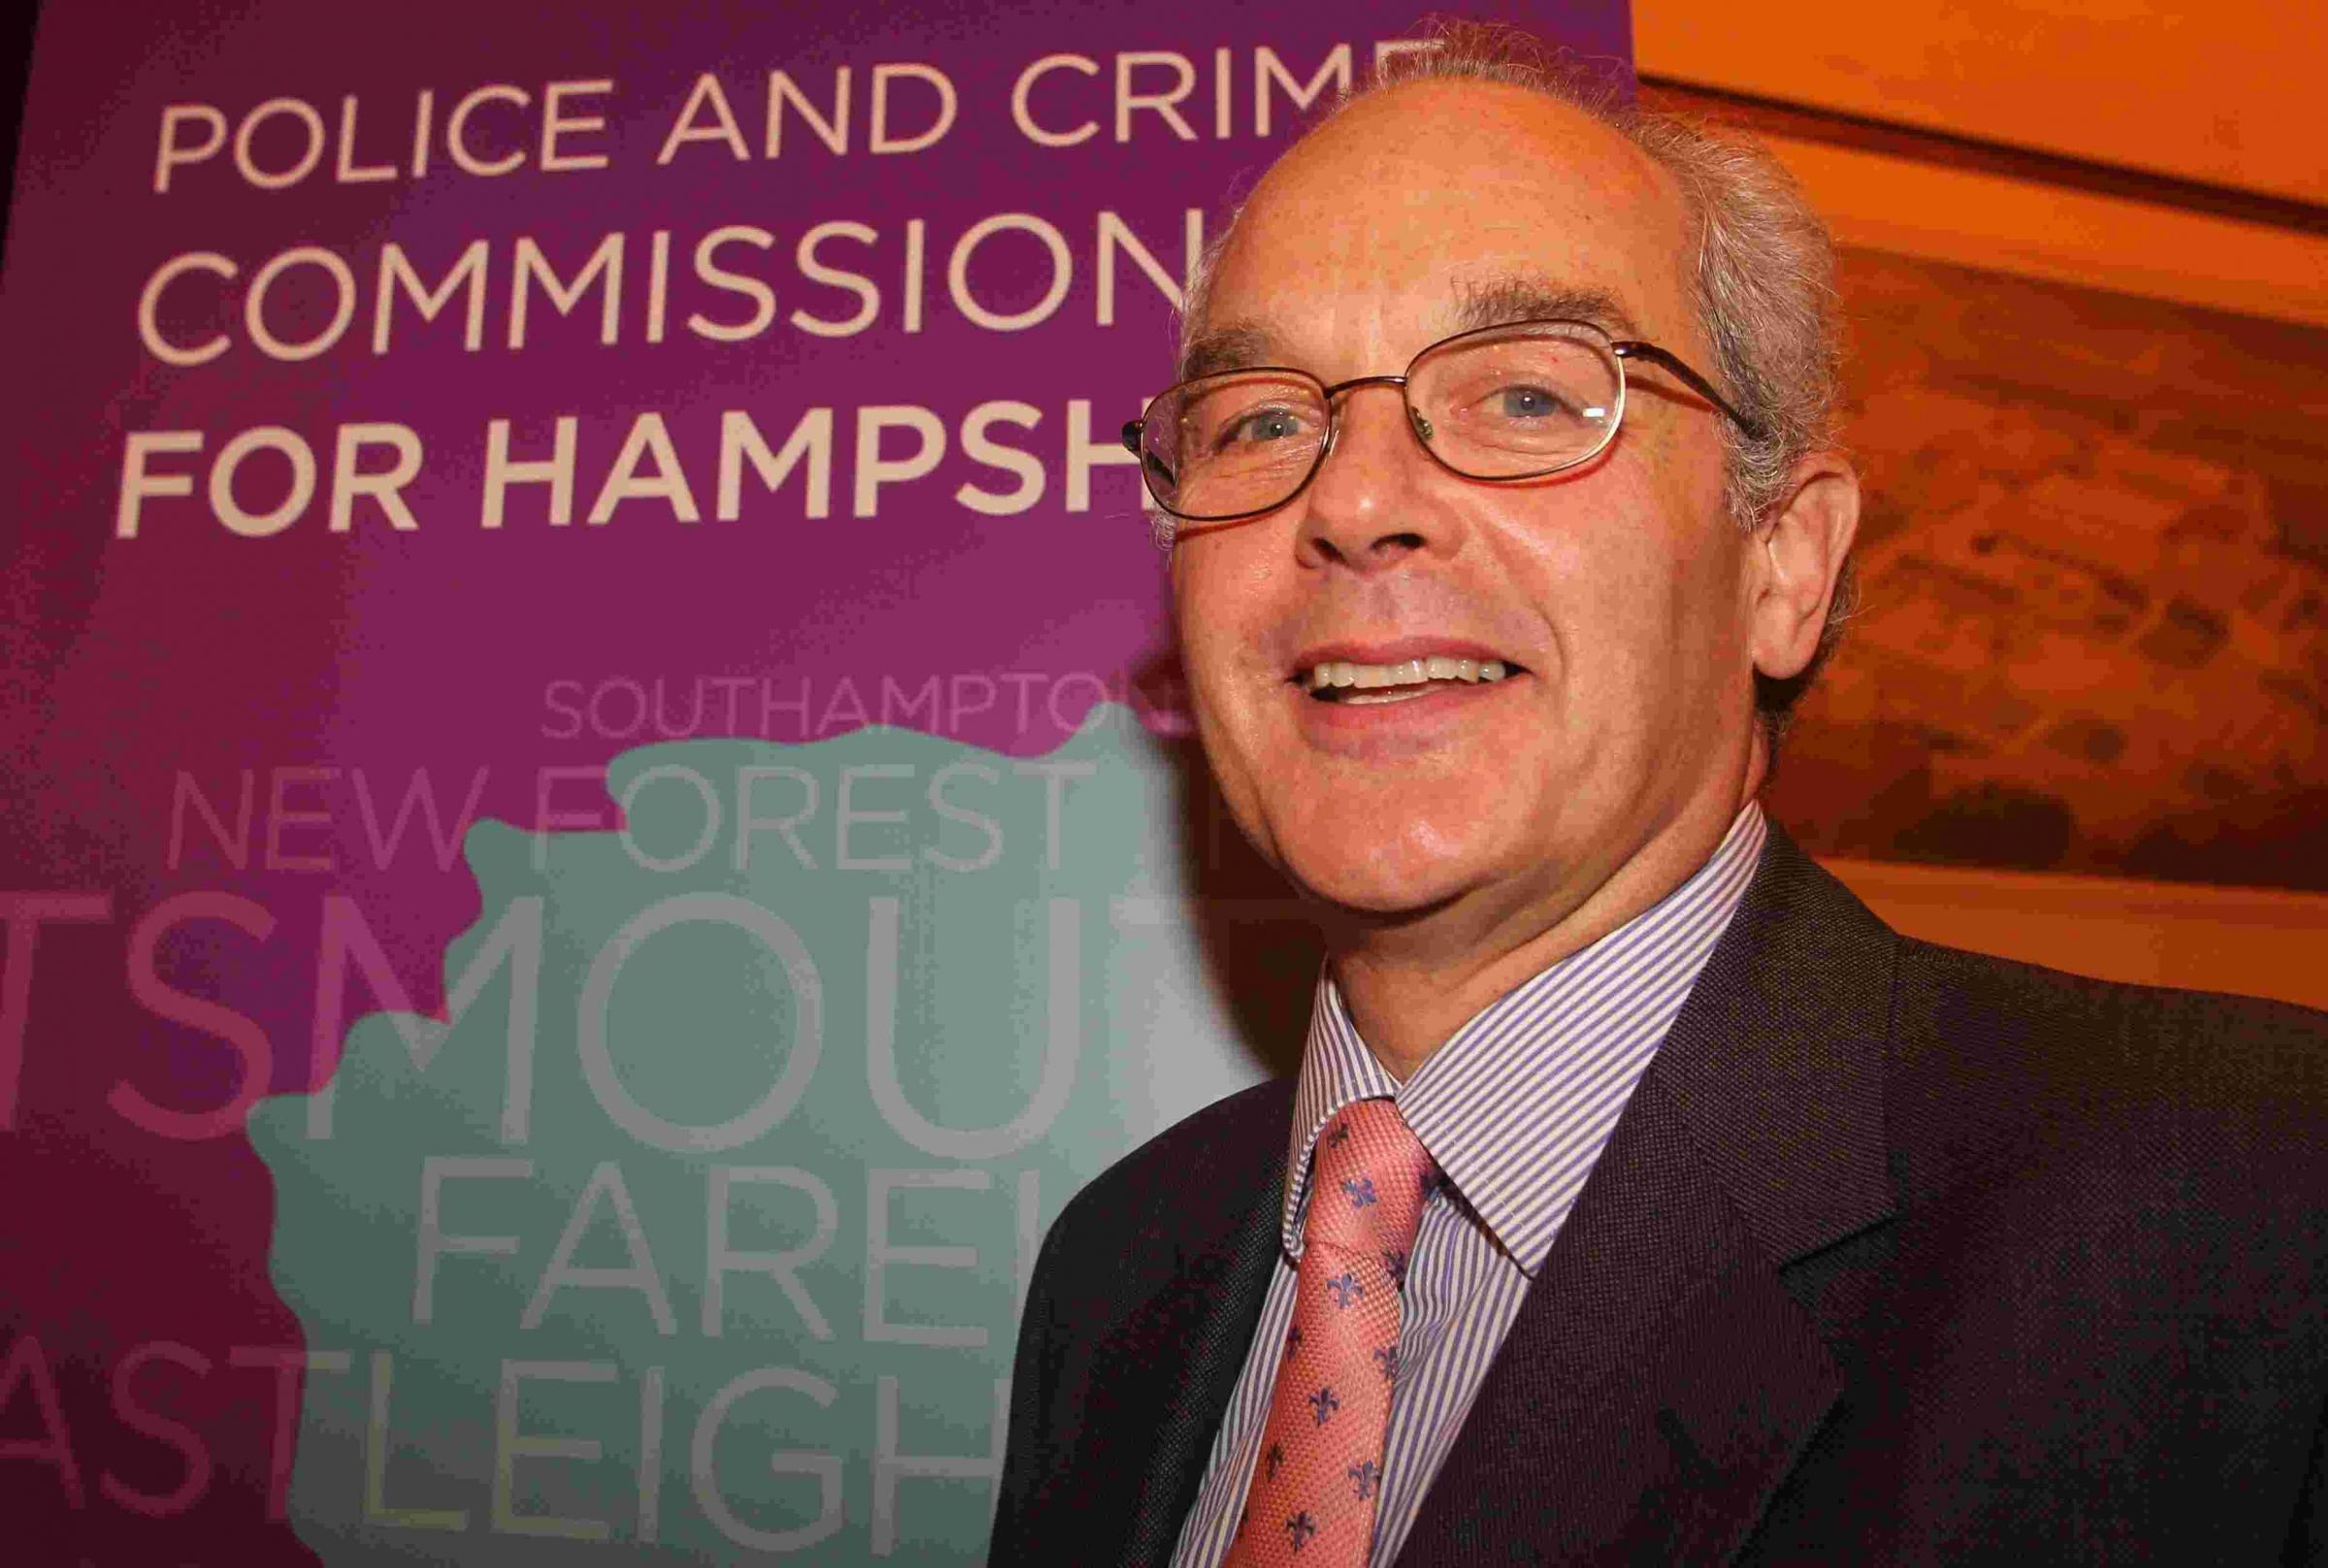 Hampshire PCC forced to use reserves to plug £1m hole